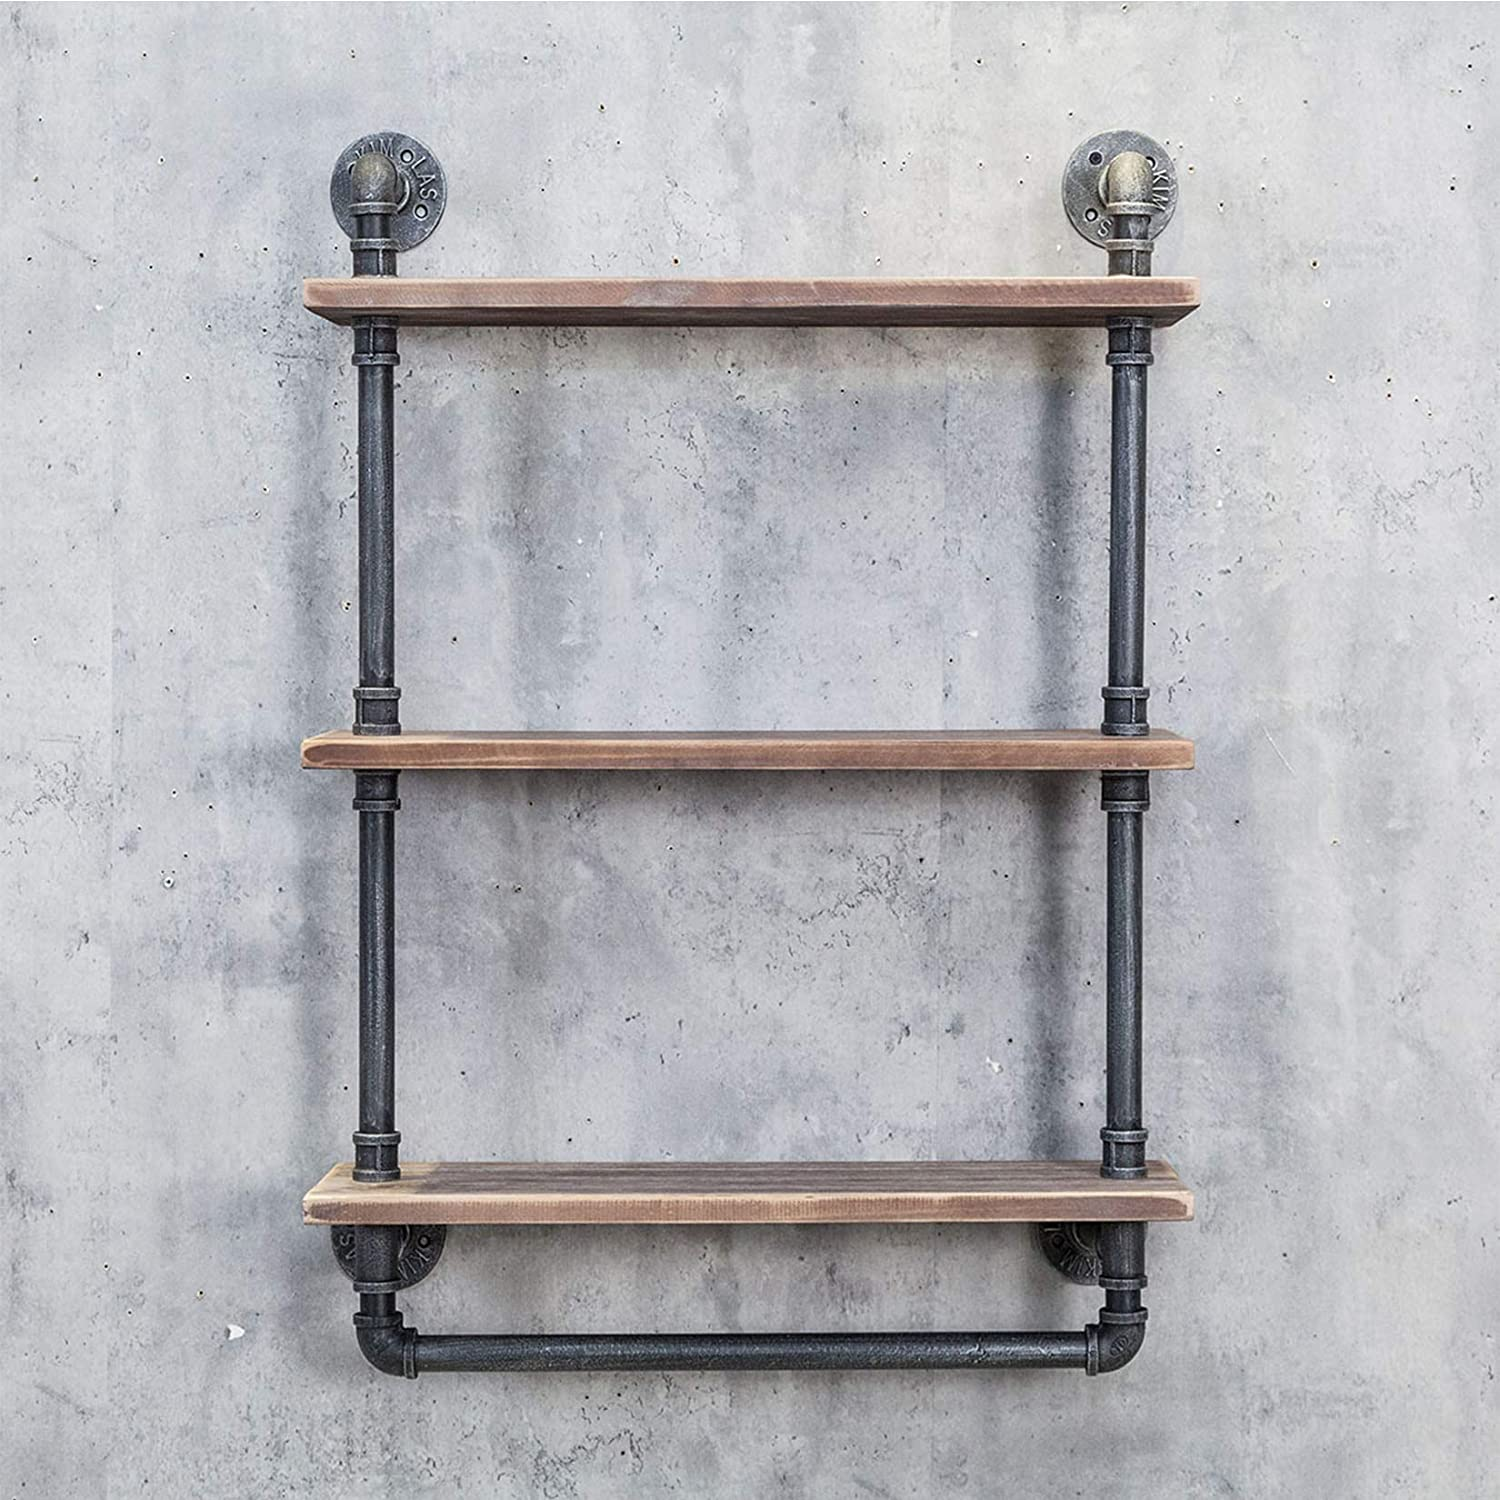 Mdepyco Industrial Pipe Bathroom Shelves Rustic 20in Wood Shelf With Towel Bar Farmhouse Towel Rack Metal Floating Shelving Towel Holder Wall Mounted 3 Tier Iron Distressed Shelf Over Toilet Amazon Co Uk Kitchen Home